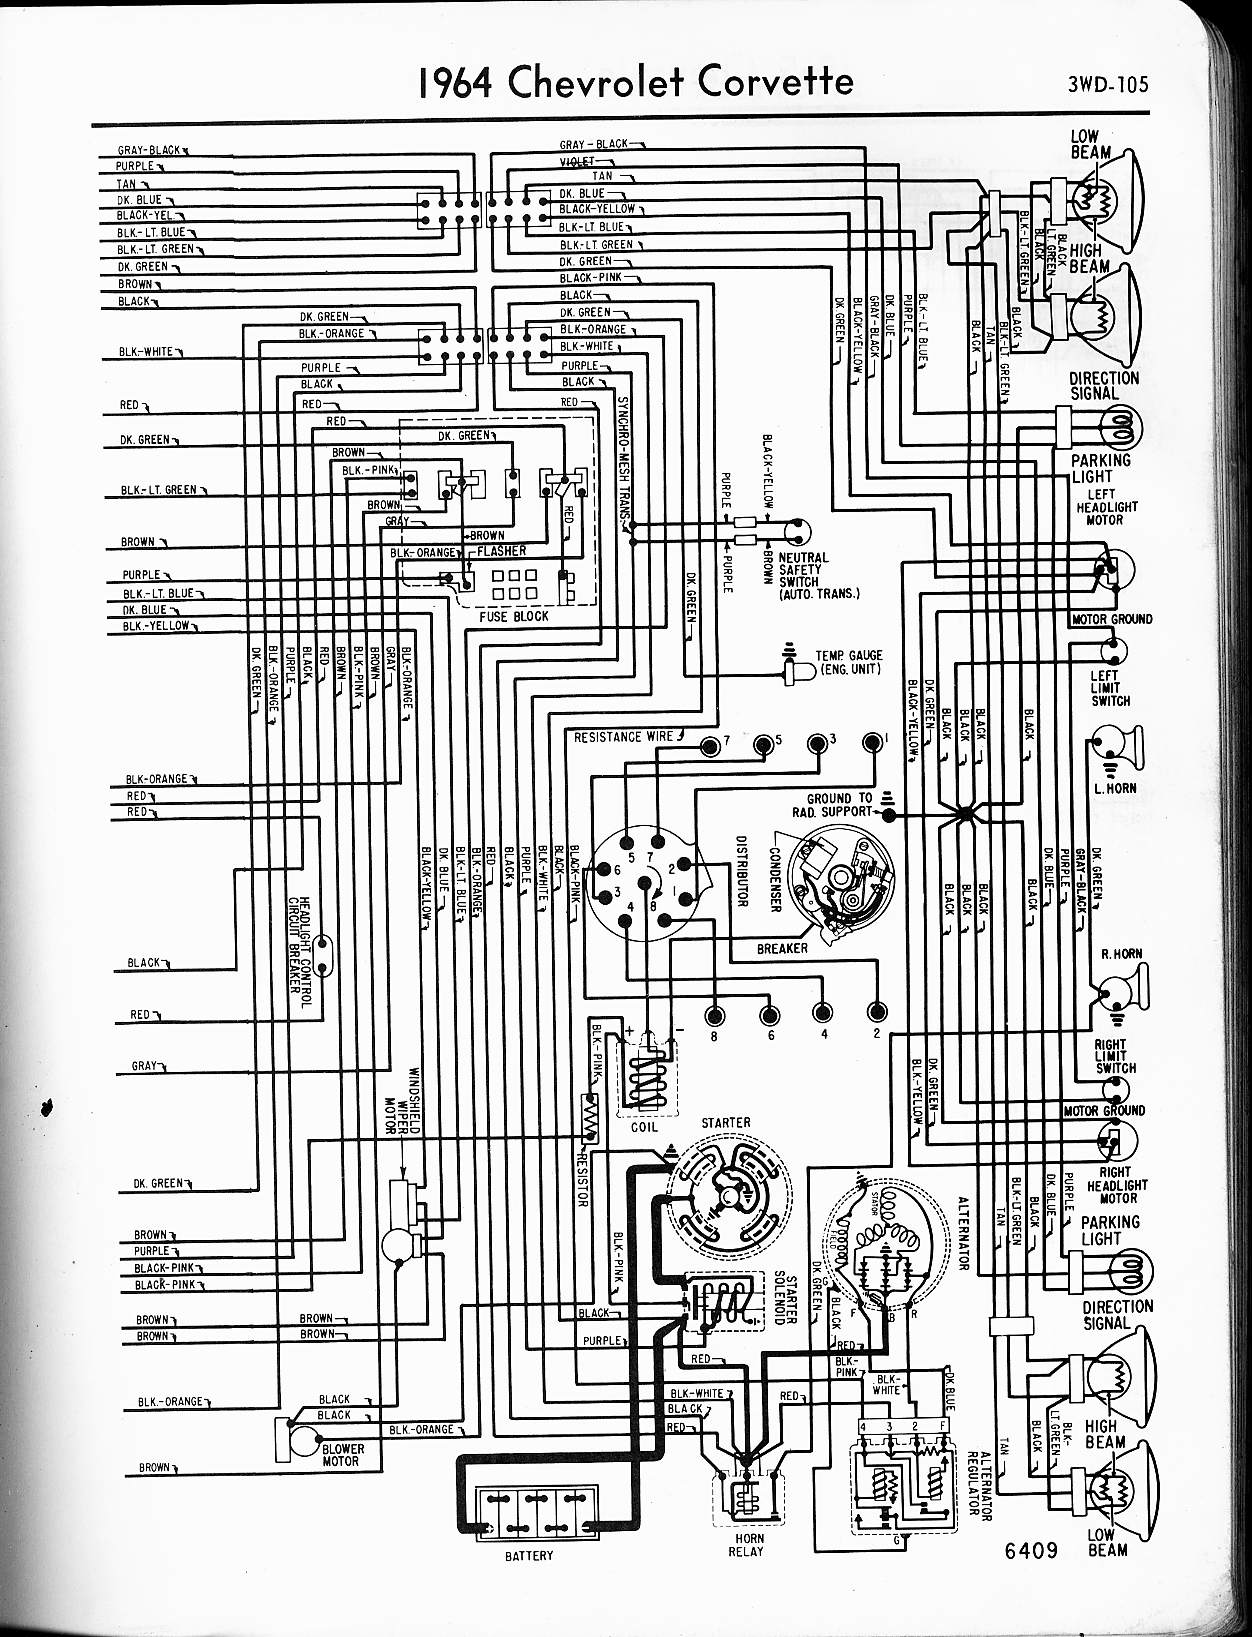 62 chevy corvette wiring diagram expert schematics diagram rh  atcobennettrecoveries com 1962 corvette headlight wiring diagram 86  Corvette Wiring Diagram